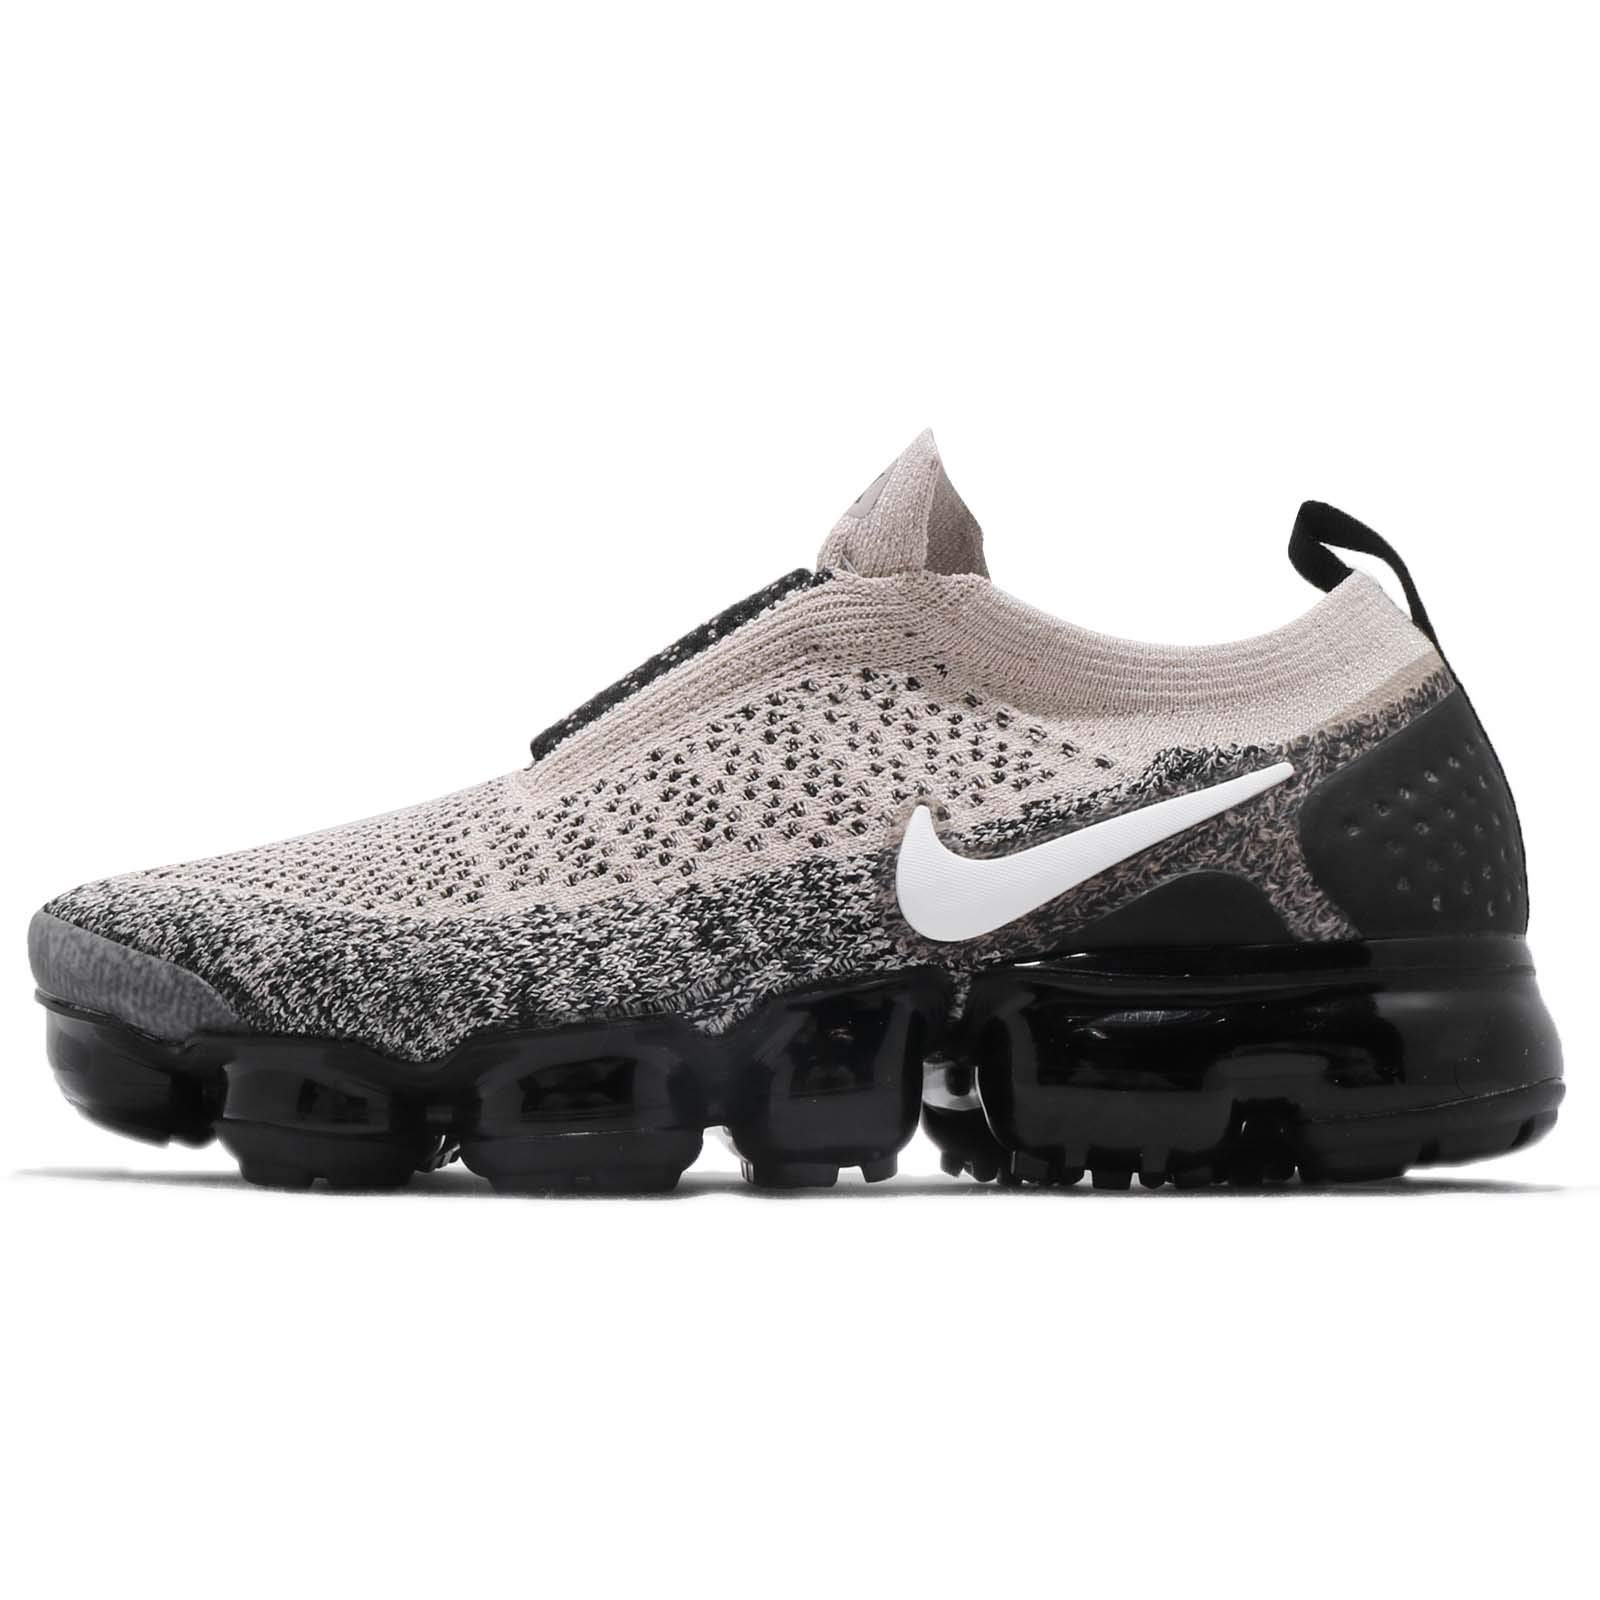 c9a71b4444 Nike Womens Air Vapormax Flyknit Moc 2 Running Trainers AJ6599 Sneakers  Shoes (UK 7 US